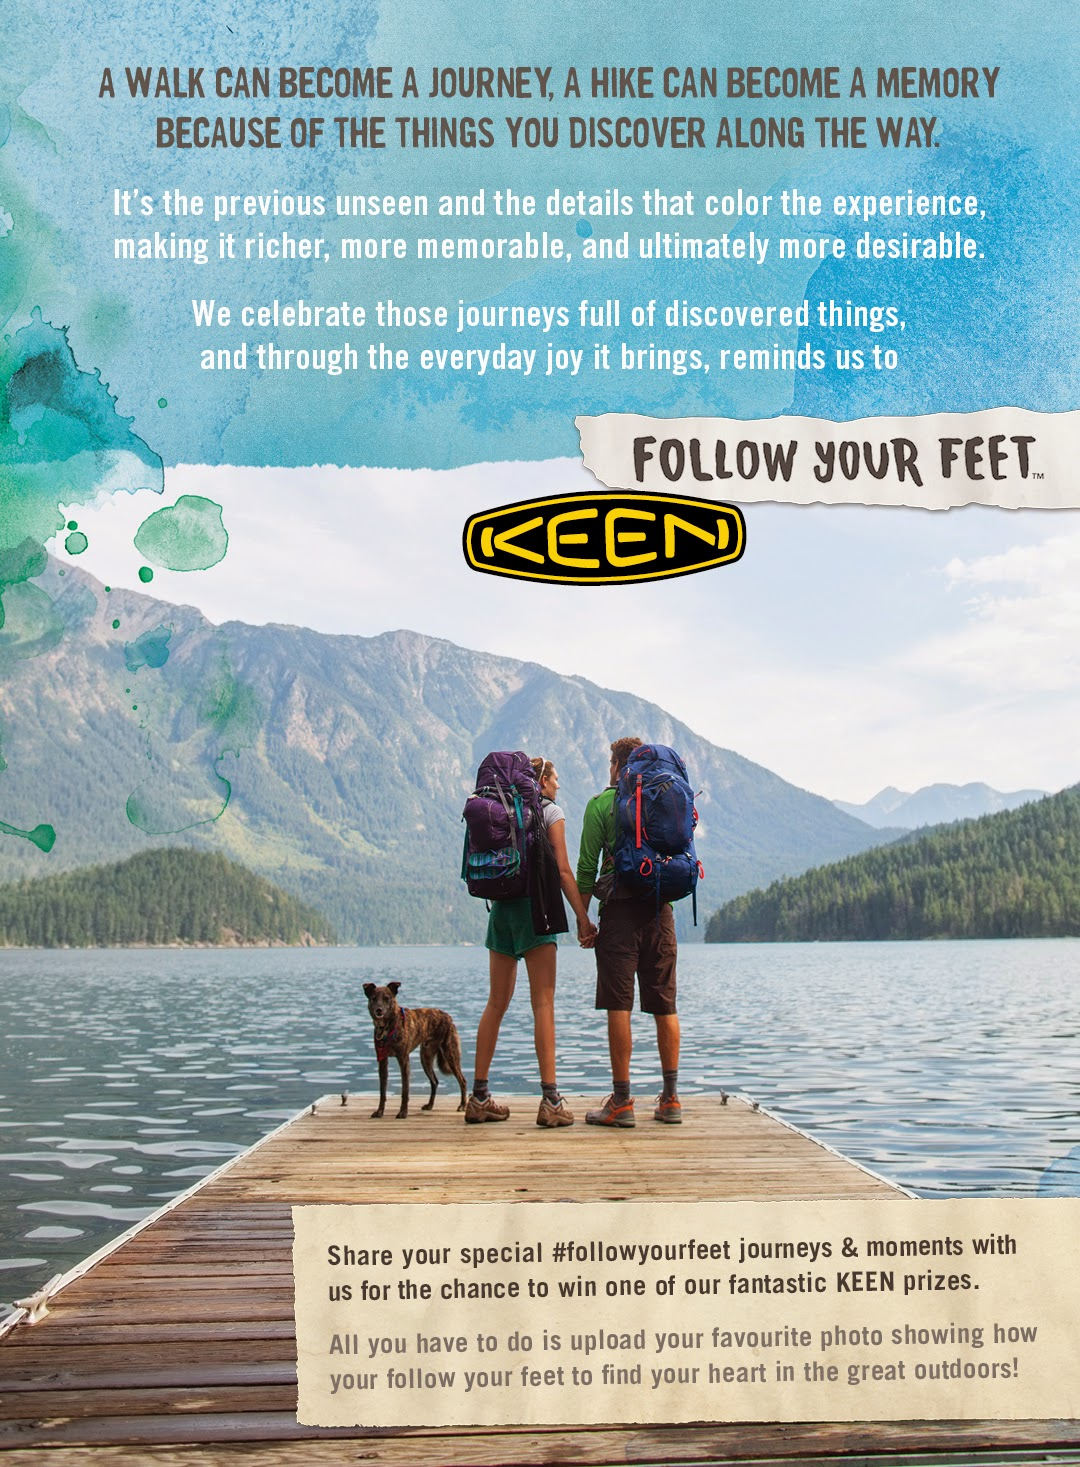 Tear for Keen Footwear